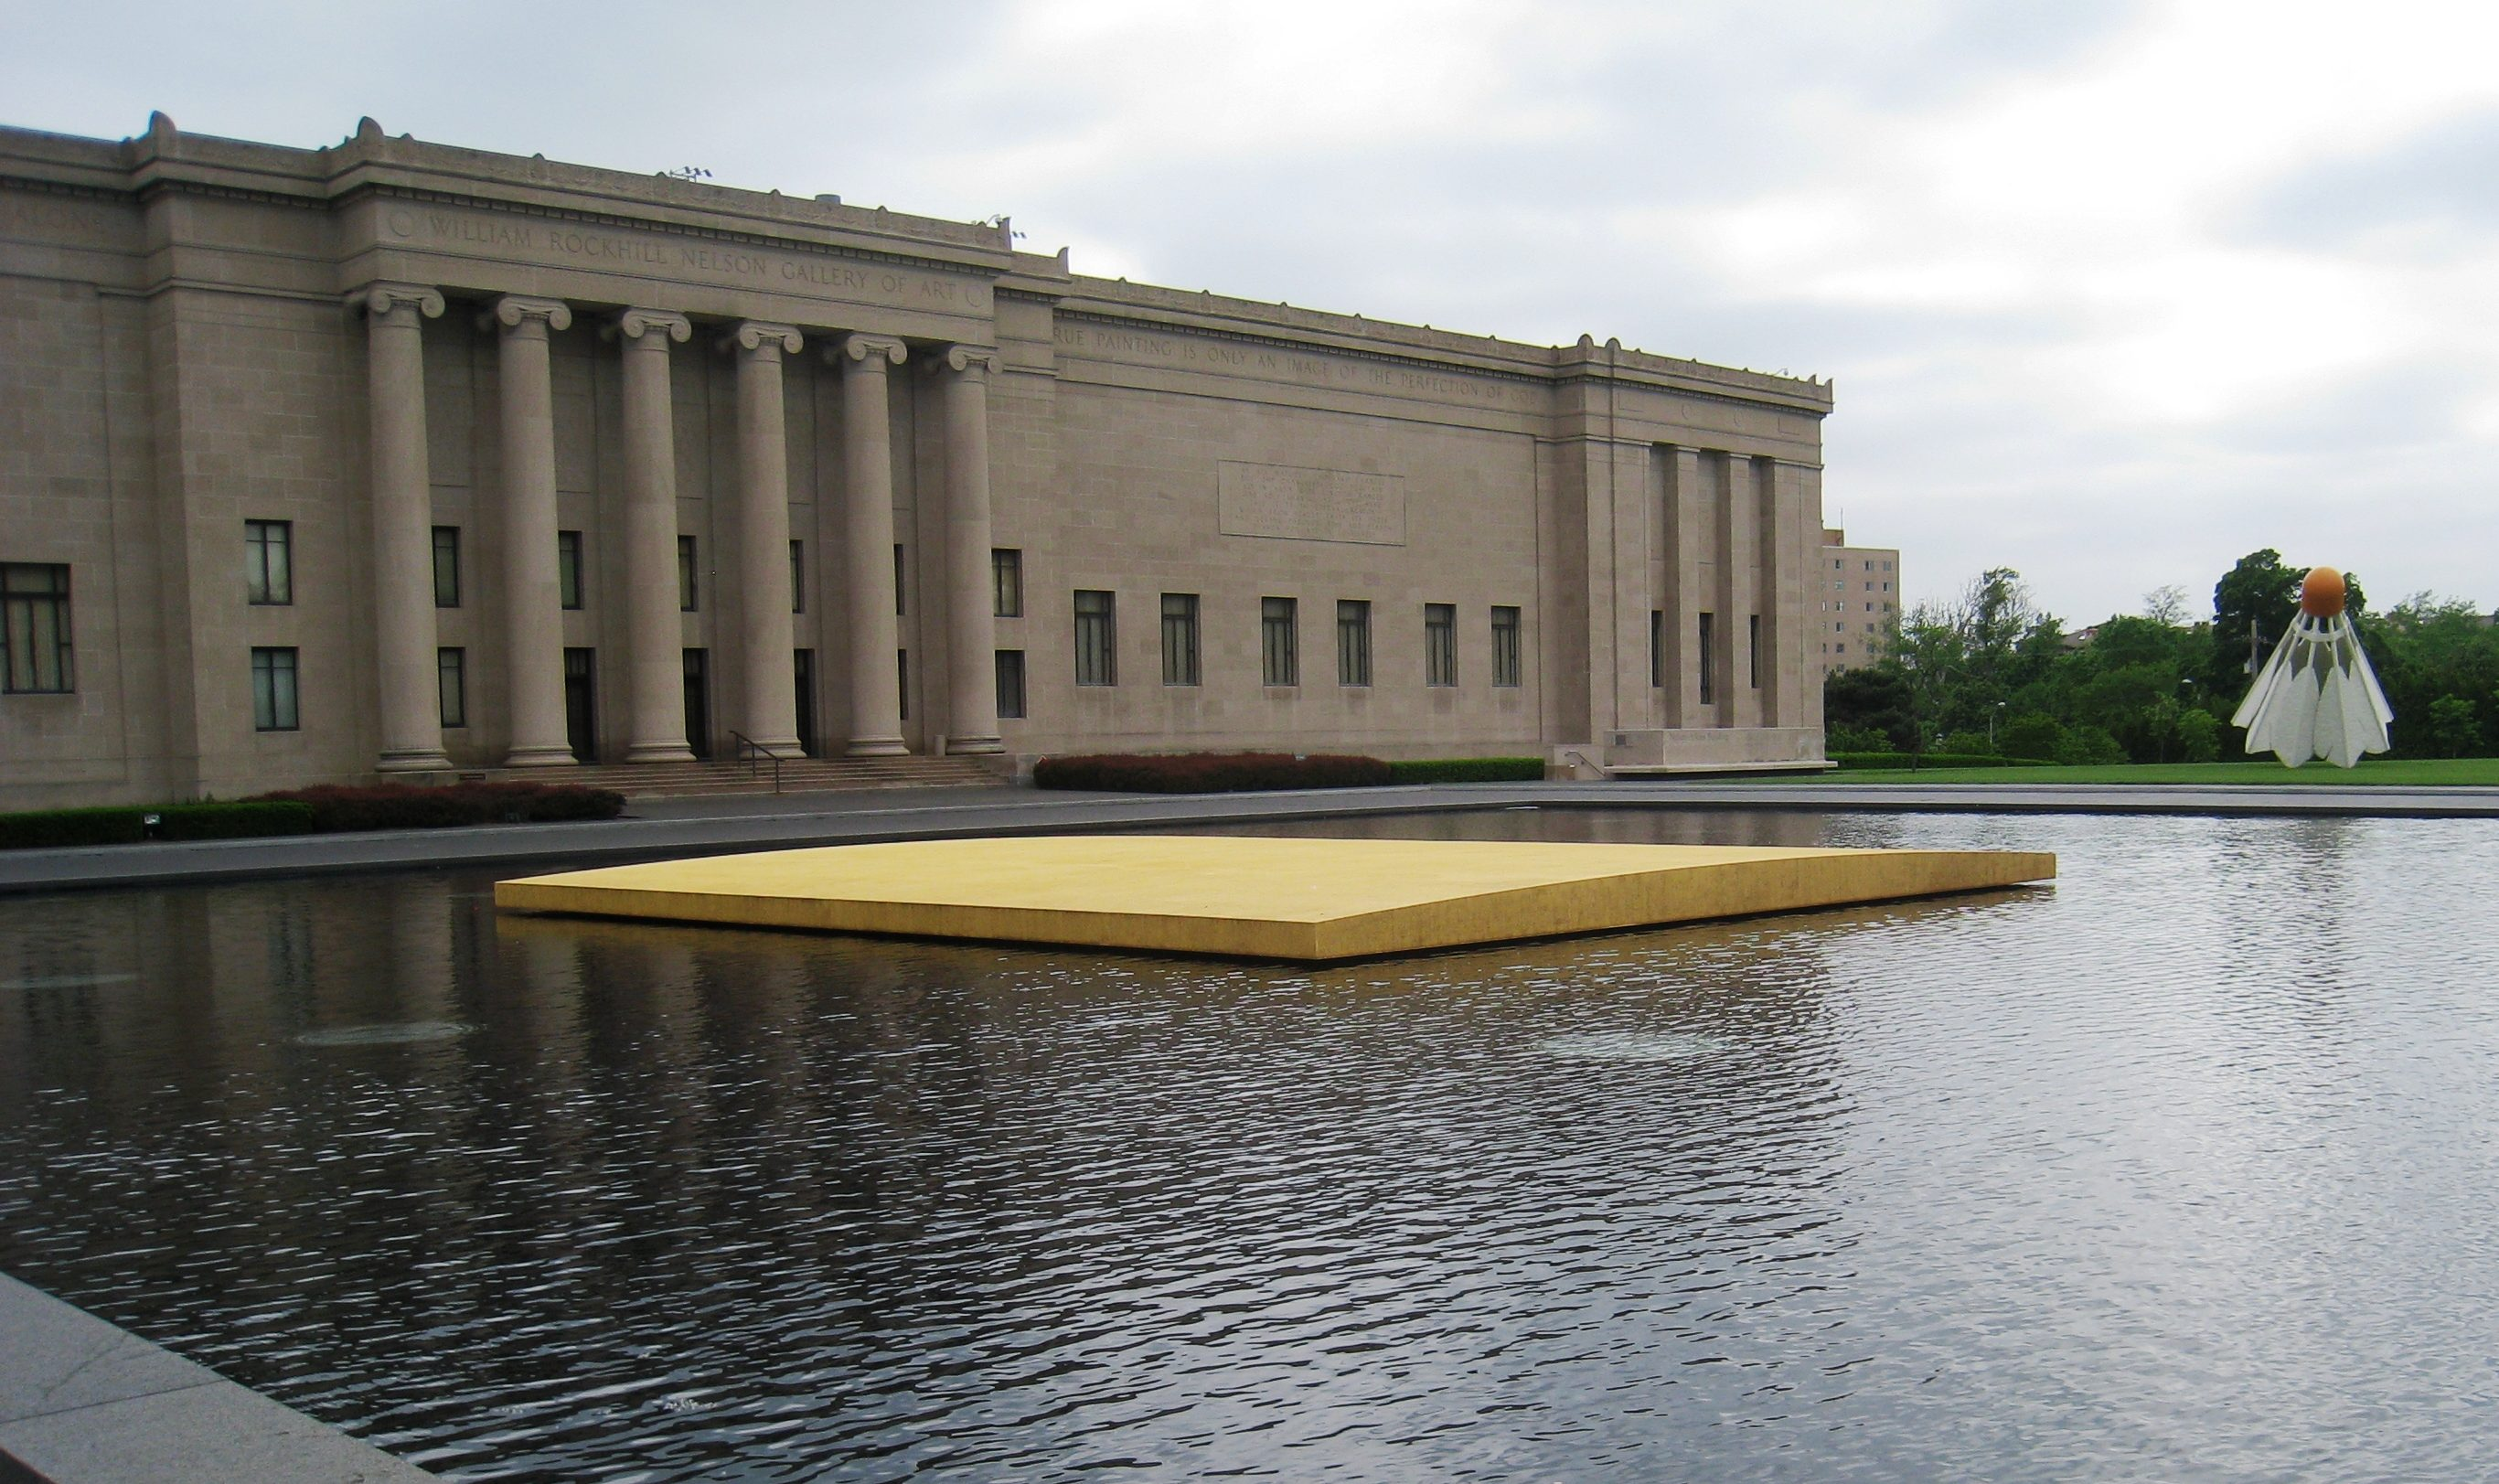 The Nelson-Atkins Museum of Art. Foto met dank aan Wikimedia Commons, Daderot, CC0